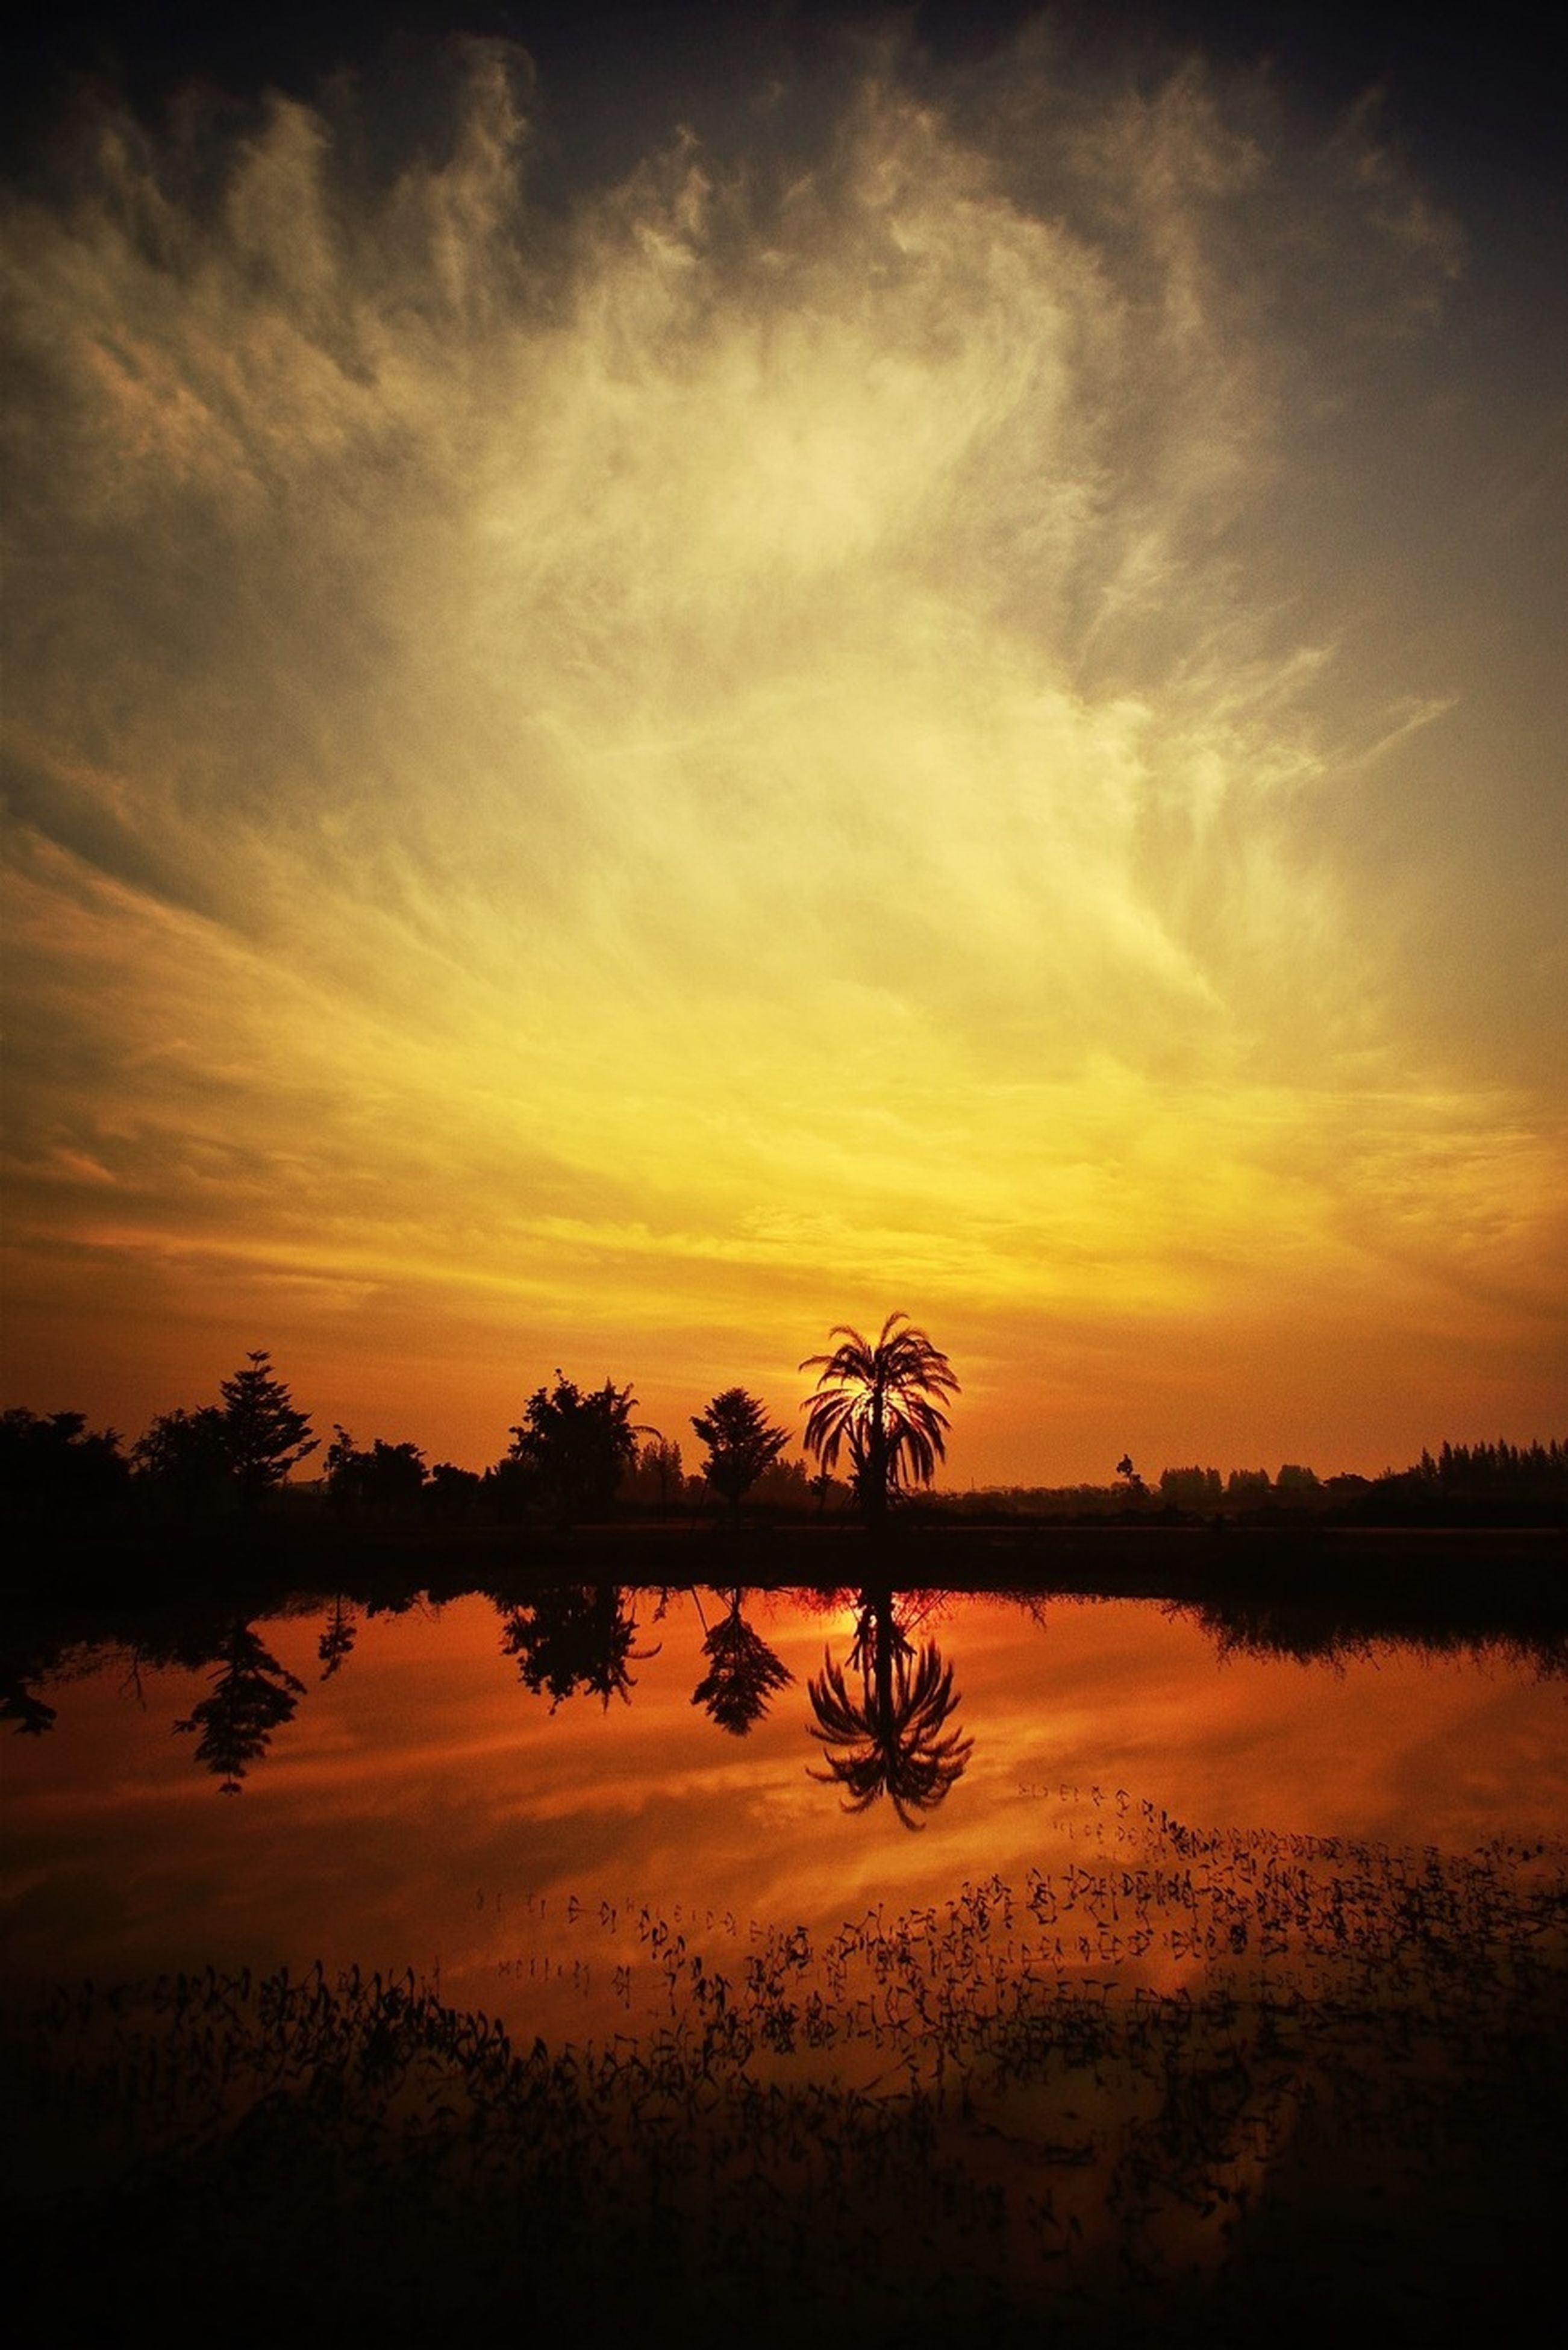 sunset, tranquil scene, tranquility, scenics, beauty in nature, lake, water, sky, silhouette, reflection, orange color, nature, idyllic, tree, cloud - sky, calm, non-urban scene, cloud, majestic, outdoors